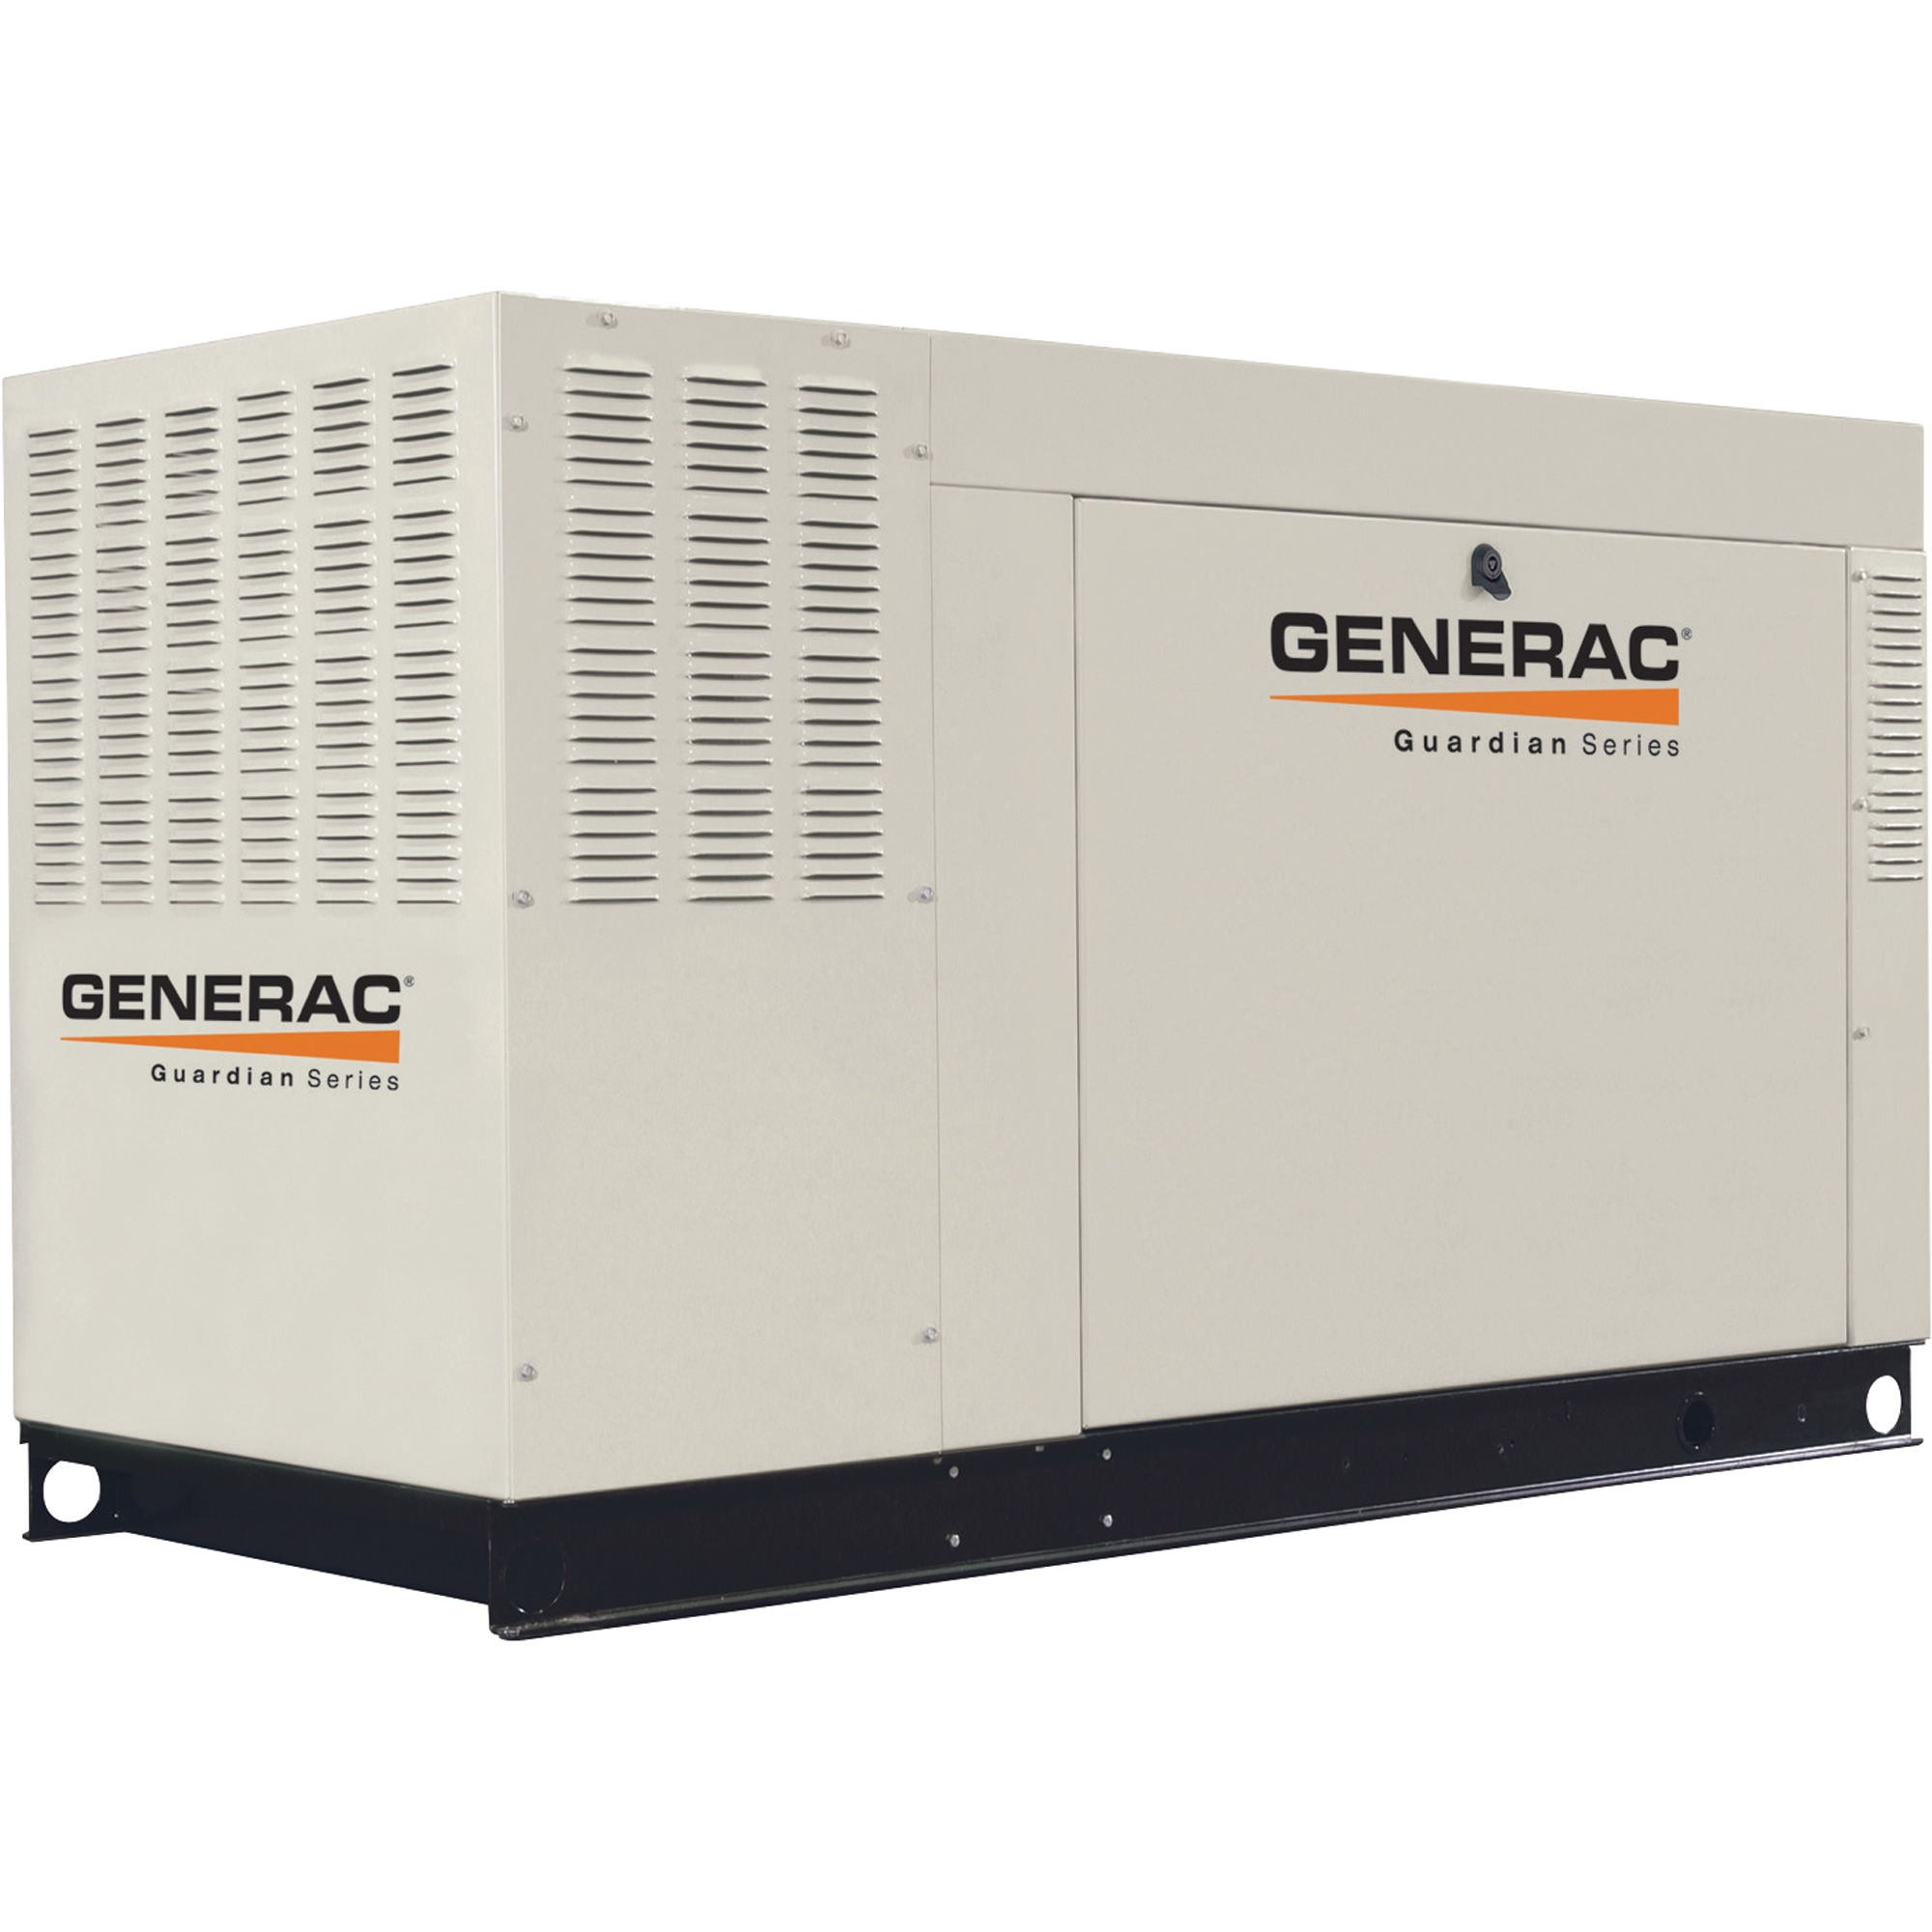 Generac Protector Series automatic standby generators are ideal for larger homes or commercial applications.